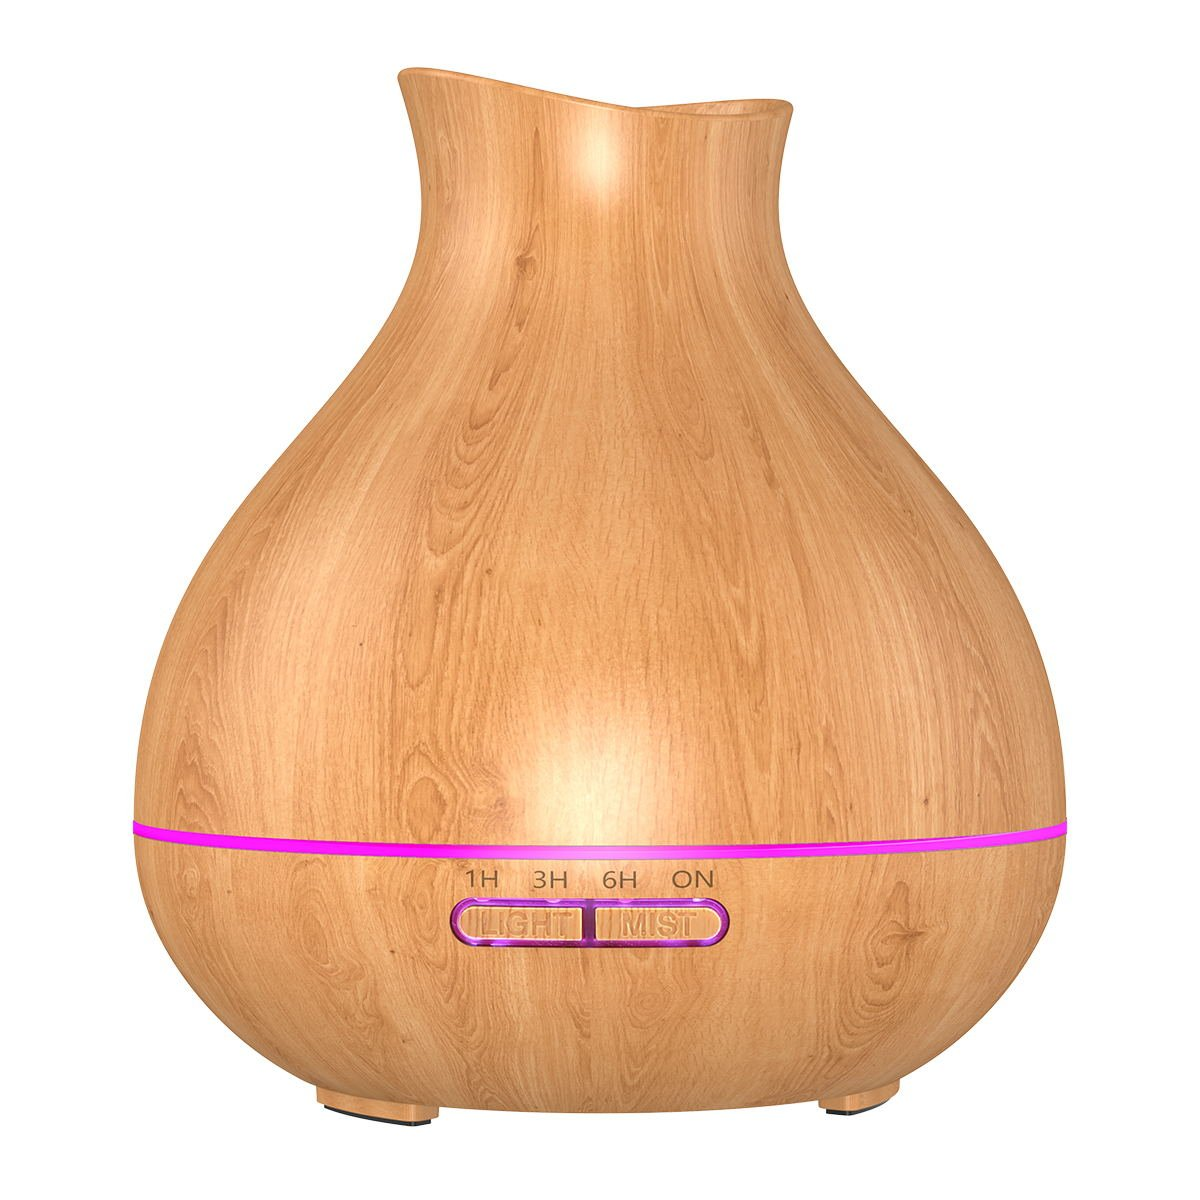 BZseed Essential Oil Diffuse 550ml Aroma Essential Oil Diffuser Light Wood Wood Grain Ultrasonic Cool Mist Humidifier with Waterless Auto Shut-Off and 7 Color LED Lights for Home Office (Brown)